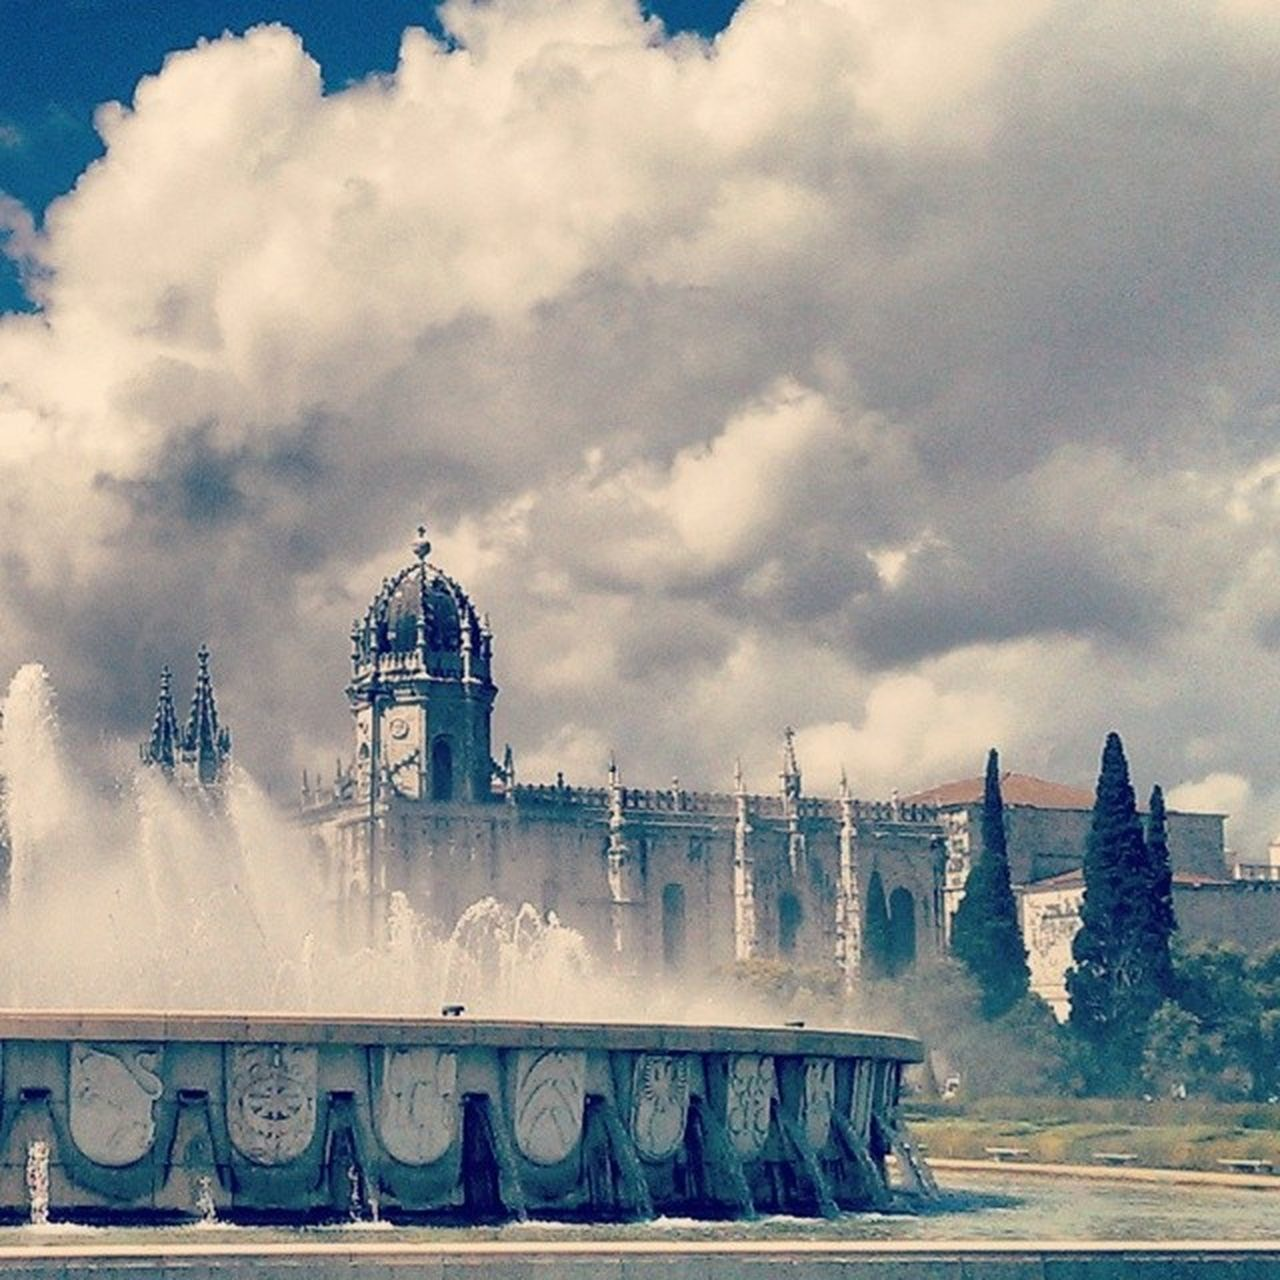 Portugal Lisboa Belam Jeronimos Monastery World Heritage Monument Vasco Da  Gama Tomb Unesco History Clouds Water Fountain Mist Architecture Travel Tourist Monks Instapic Like4like